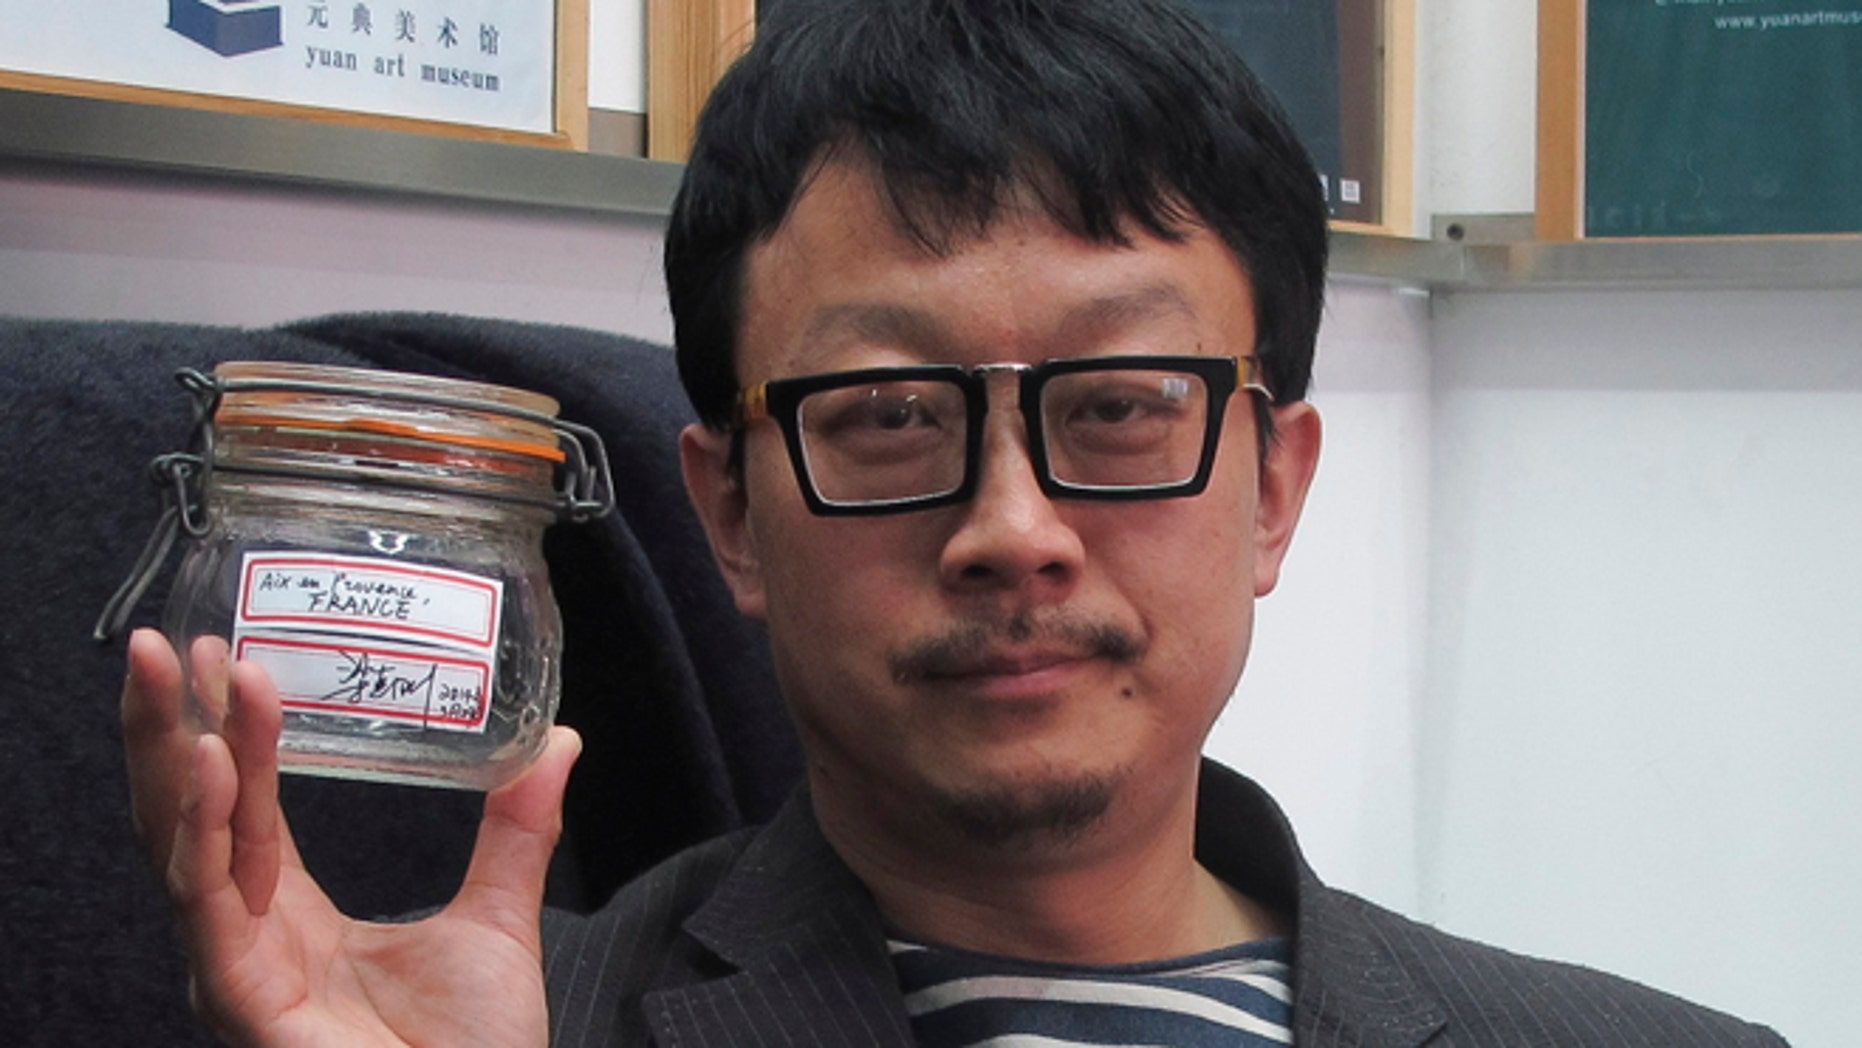 April 5, 2014: In this photo, Beijing artist Liang Kegang poses with the jar of fresh air collected in Provence, France, in an art gallery in Beijing, China.